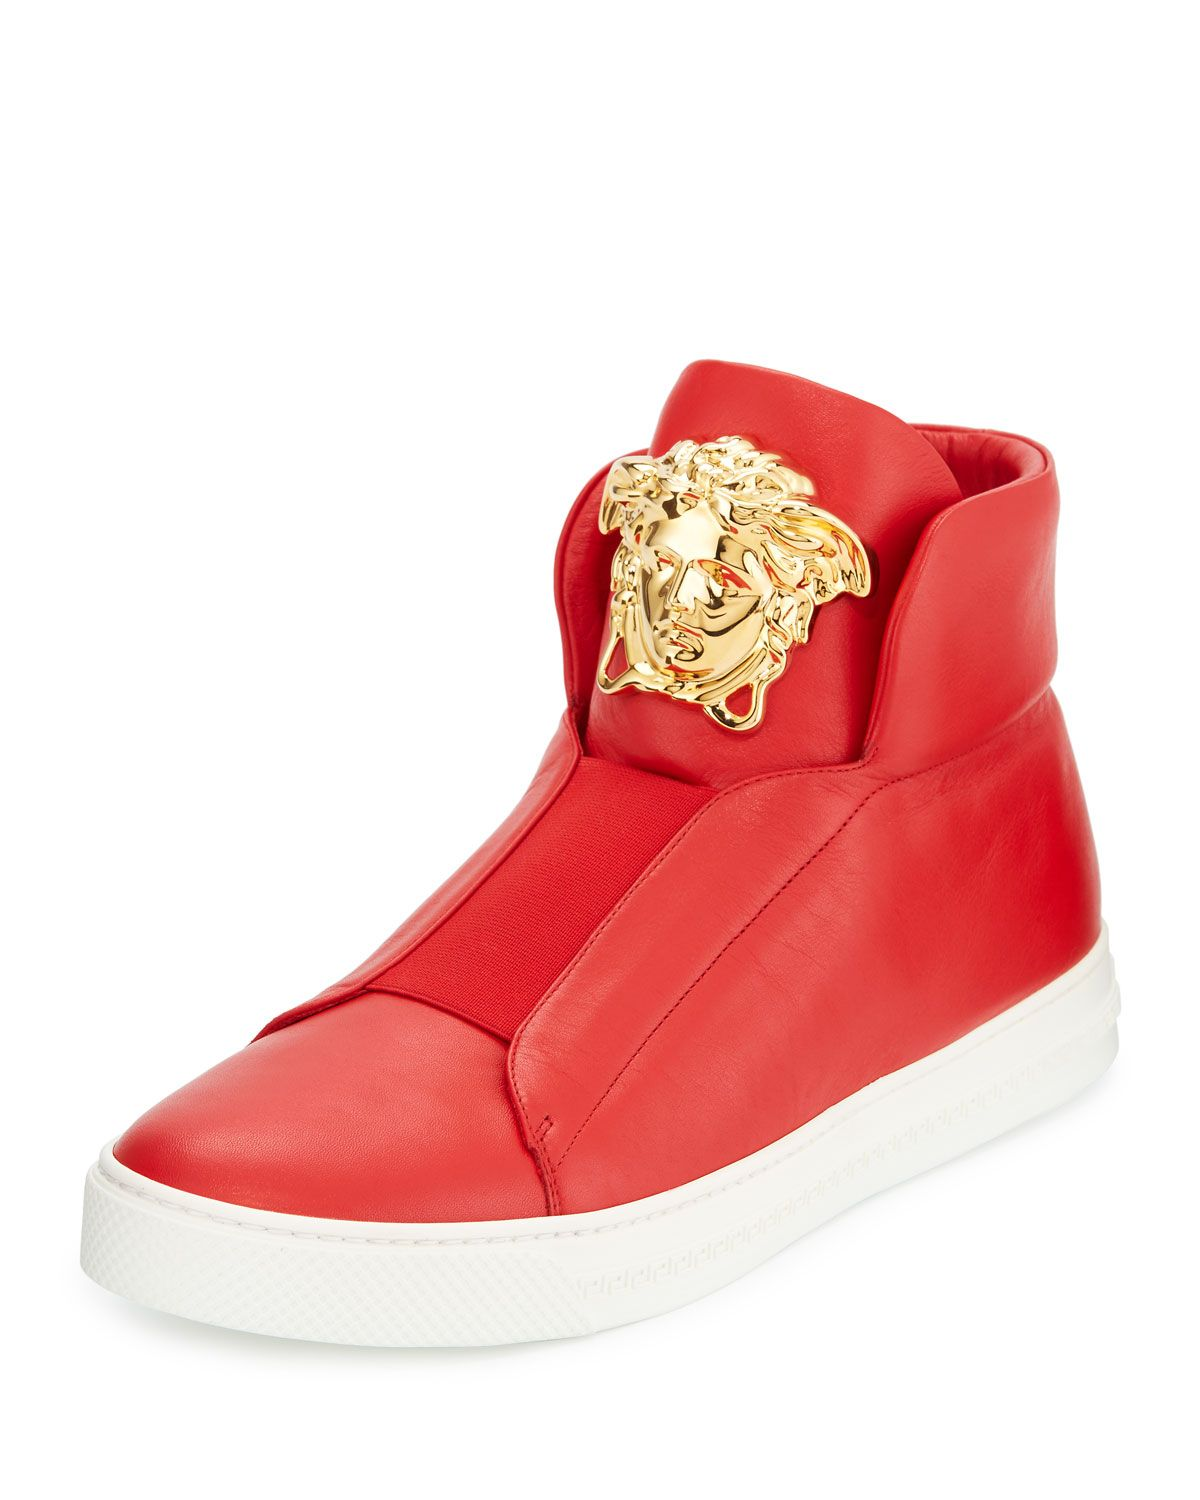 614e982f10 Palazzo Idol Leather High-Top Sneaker Red | *Apparel & Accessories ...